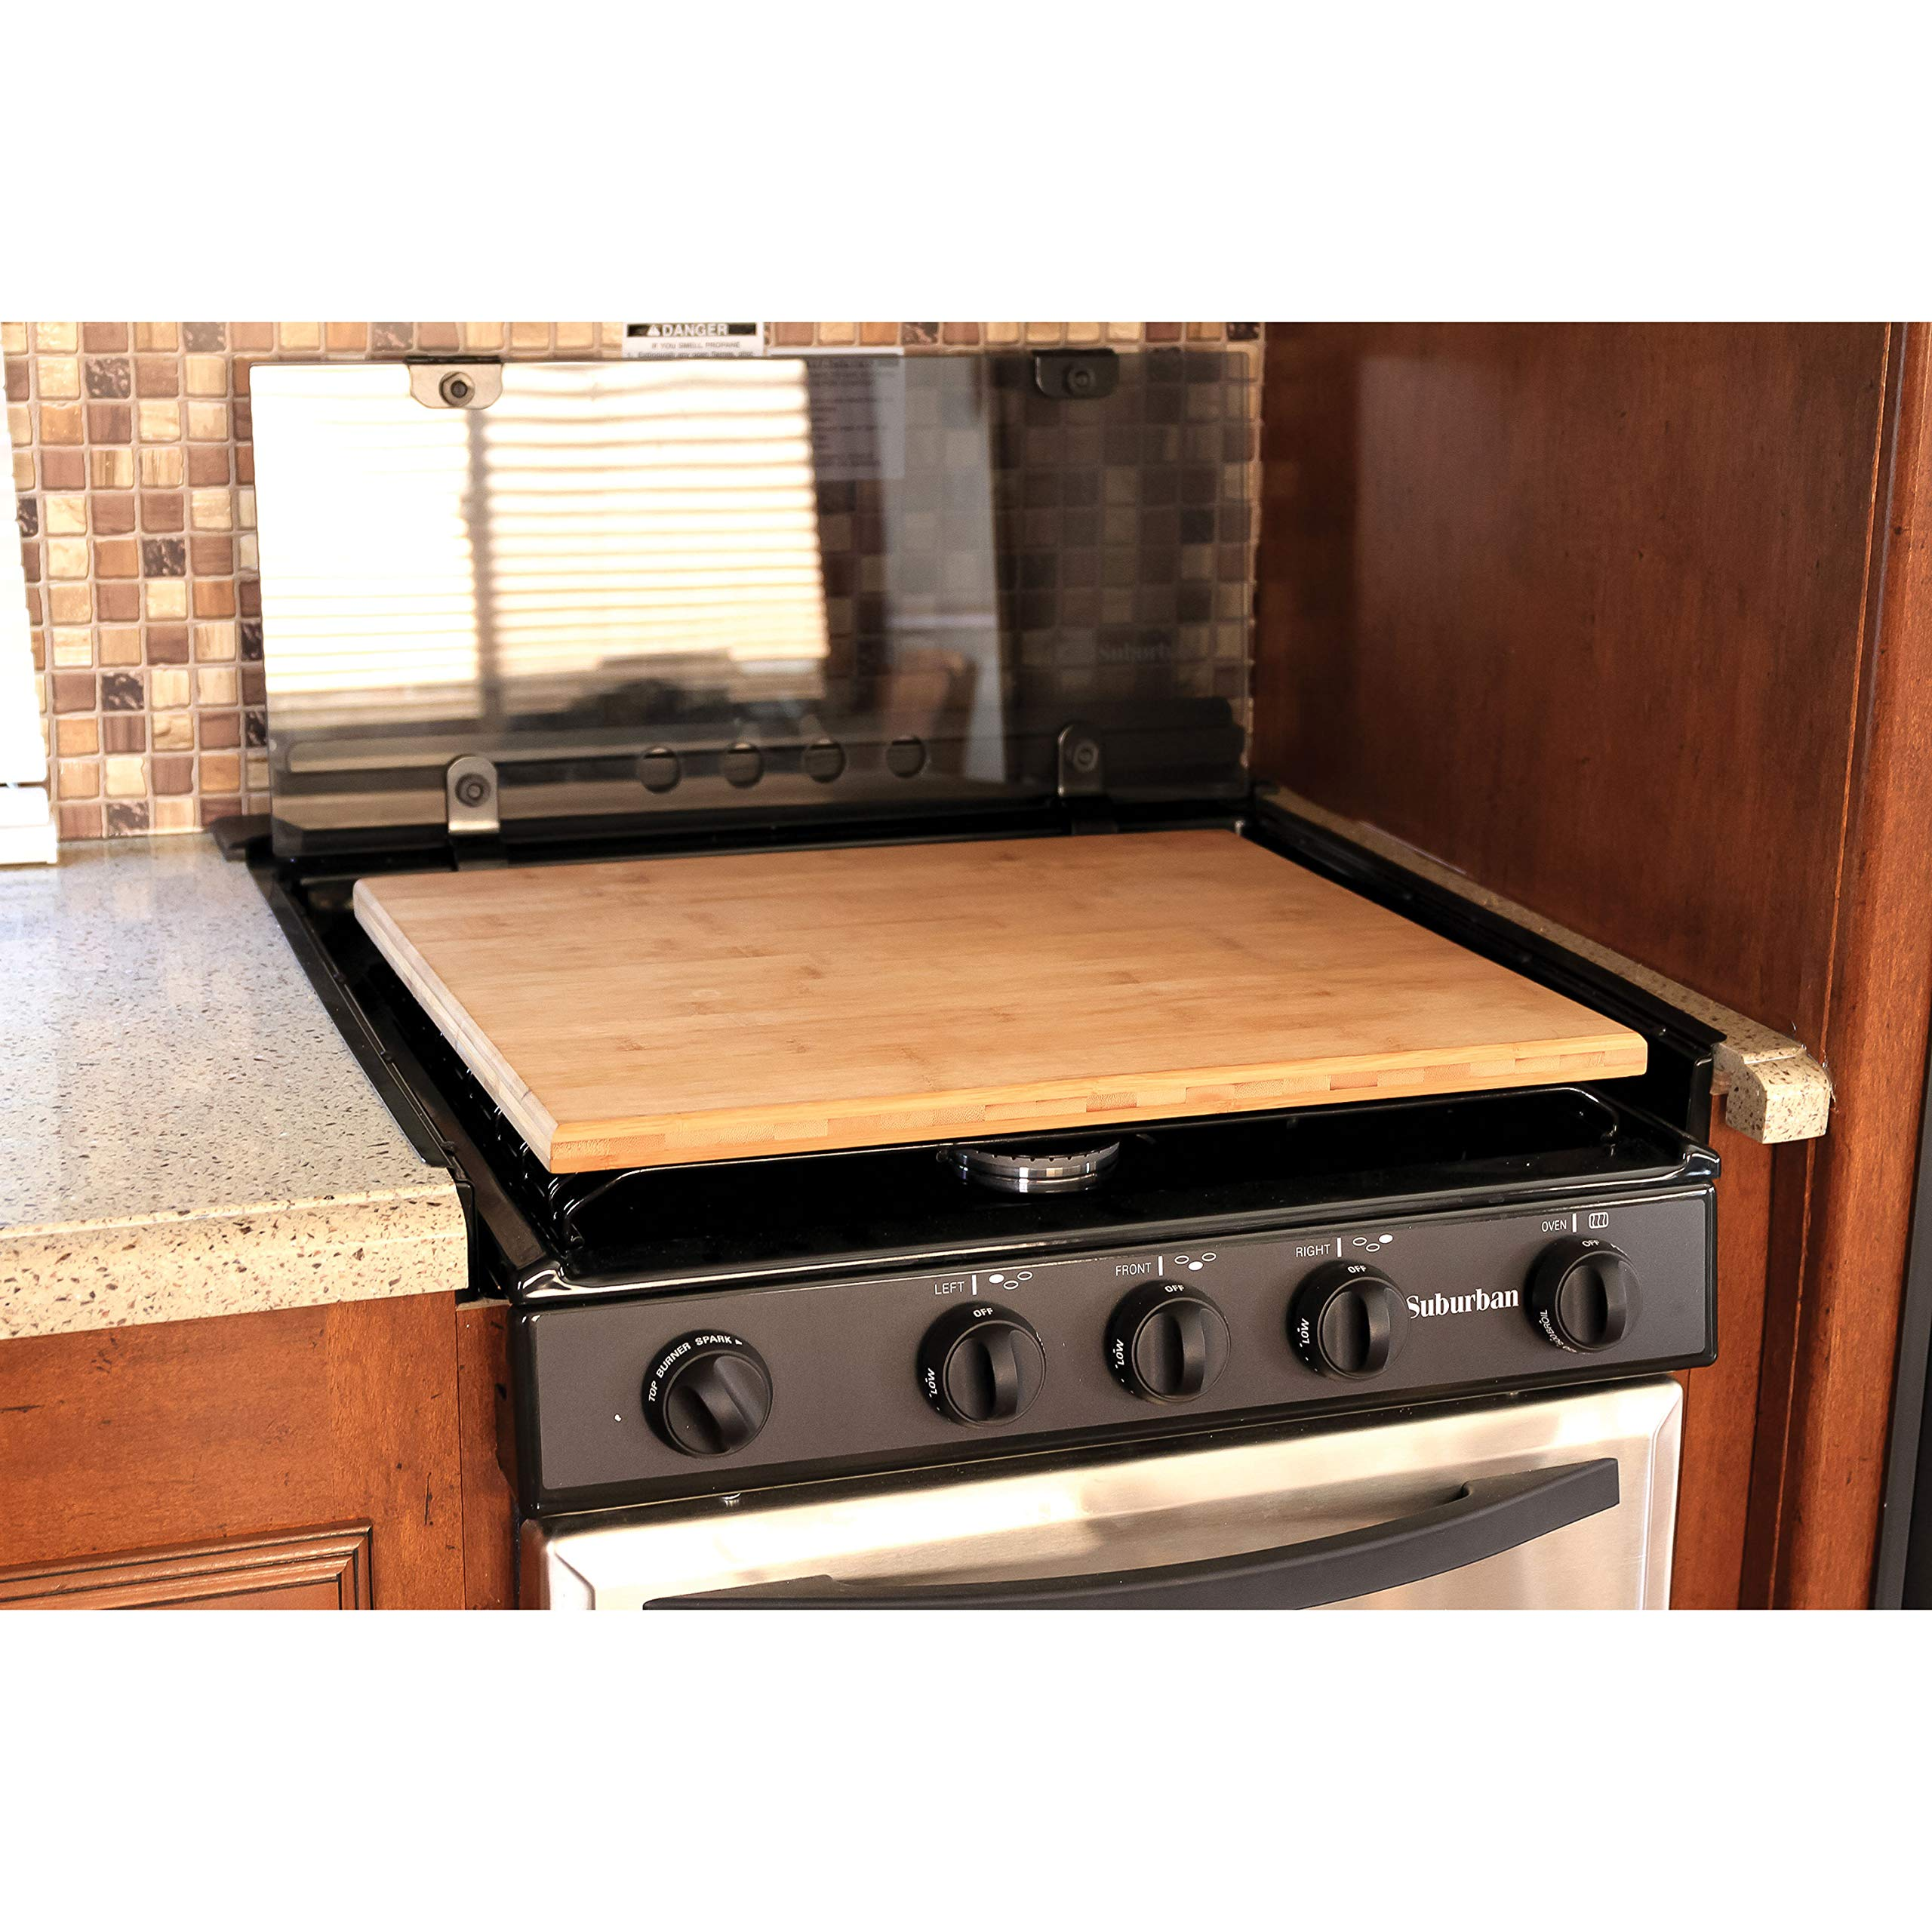 Camco 43571 Stove Cover Bamboo Silent Top by Camco